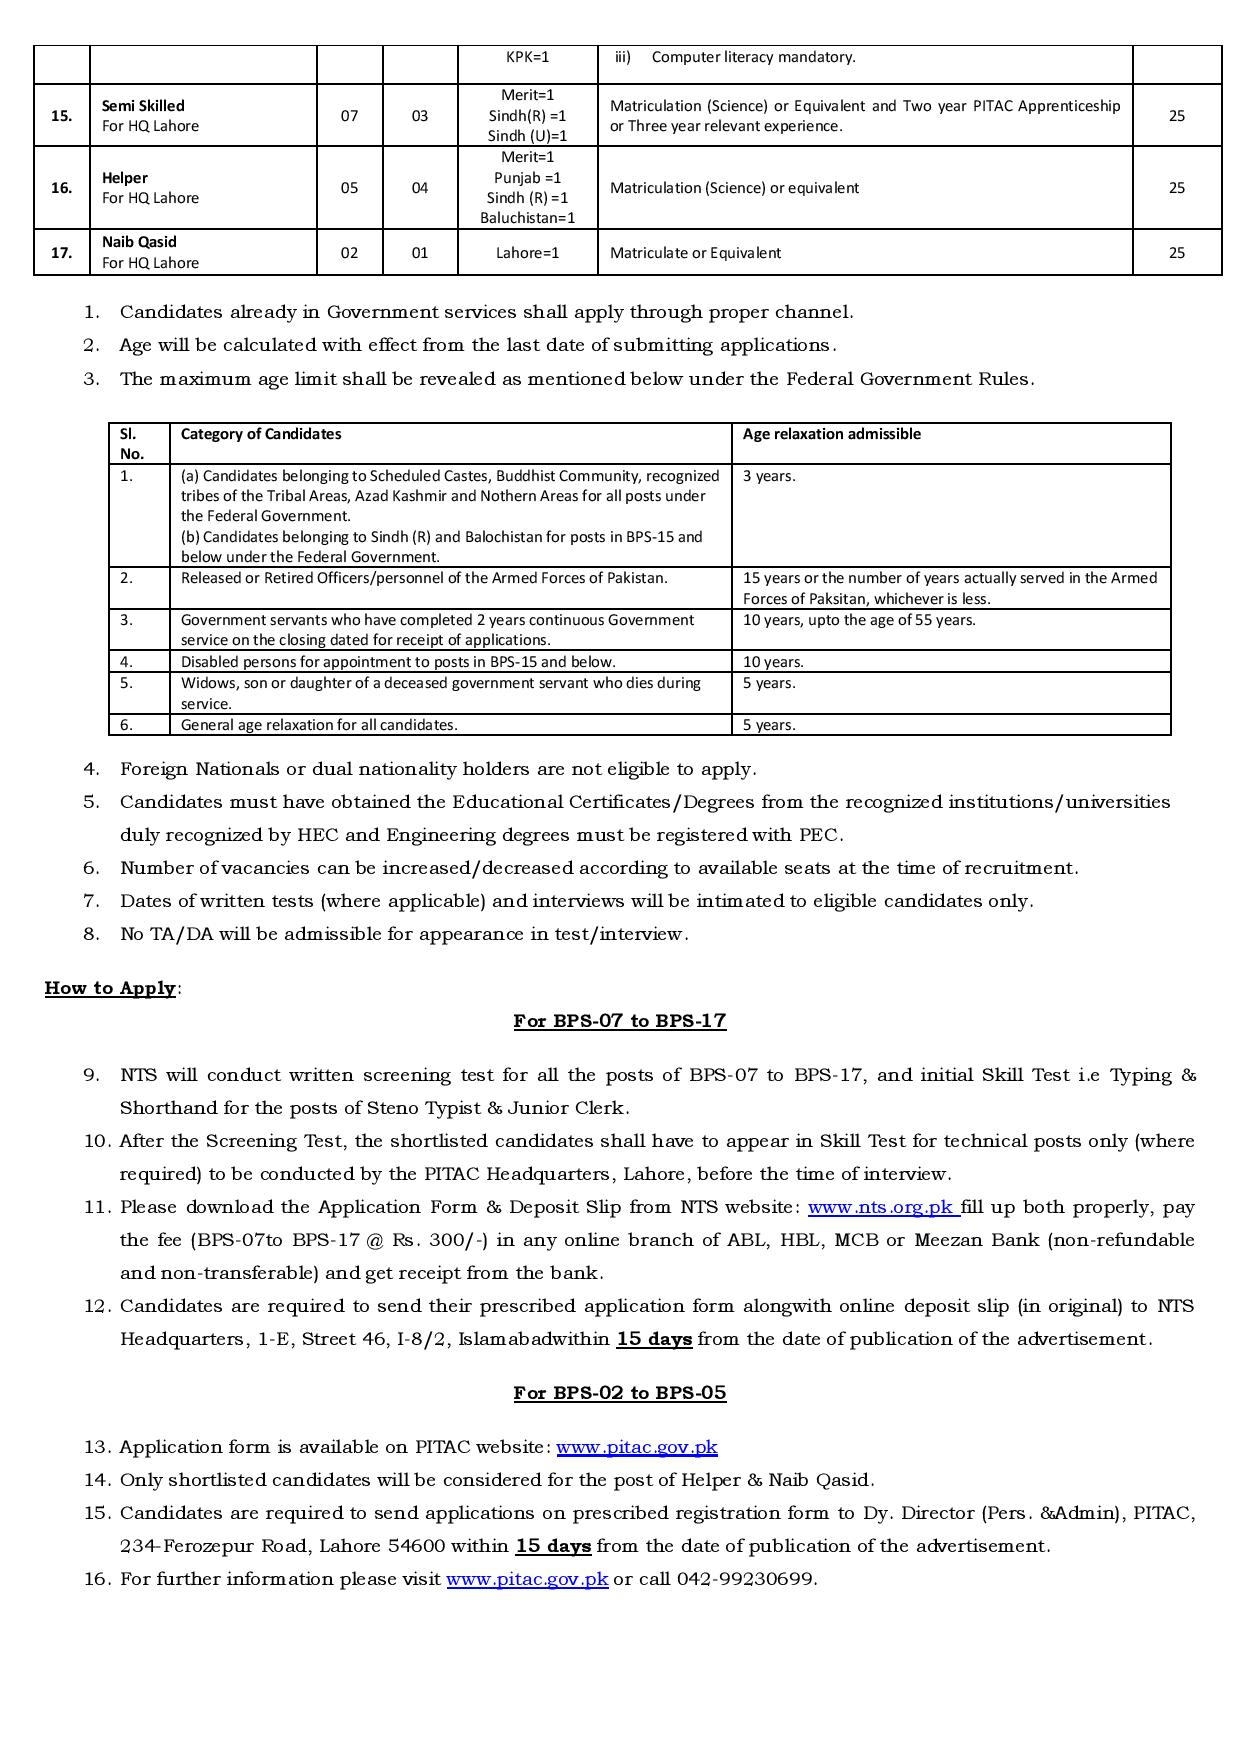 PITAC Lahore Jobs 2017 NTS Application Form Download 02